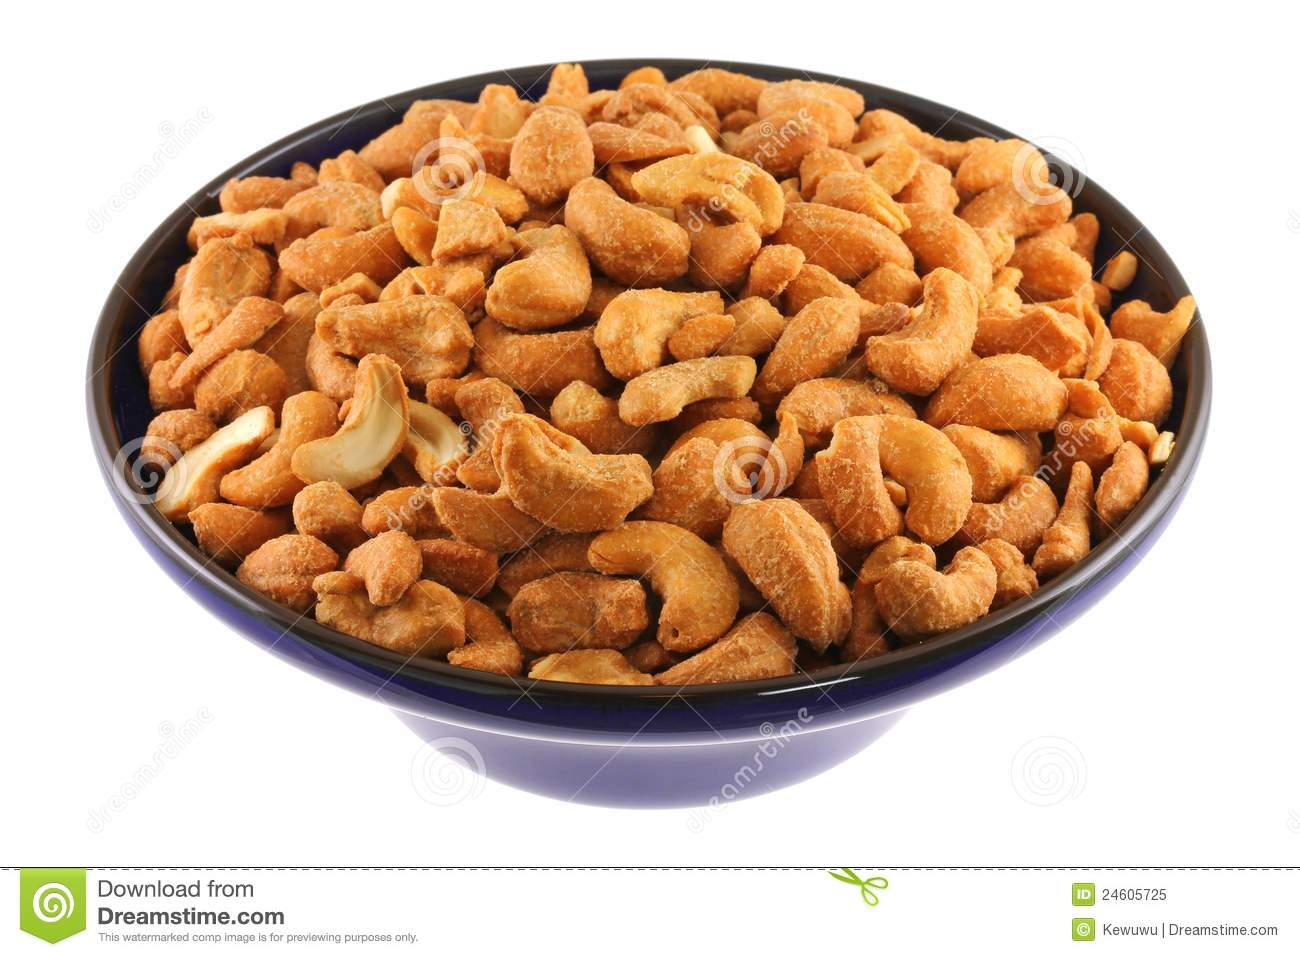 Bean clipart nuts. Roasted nut